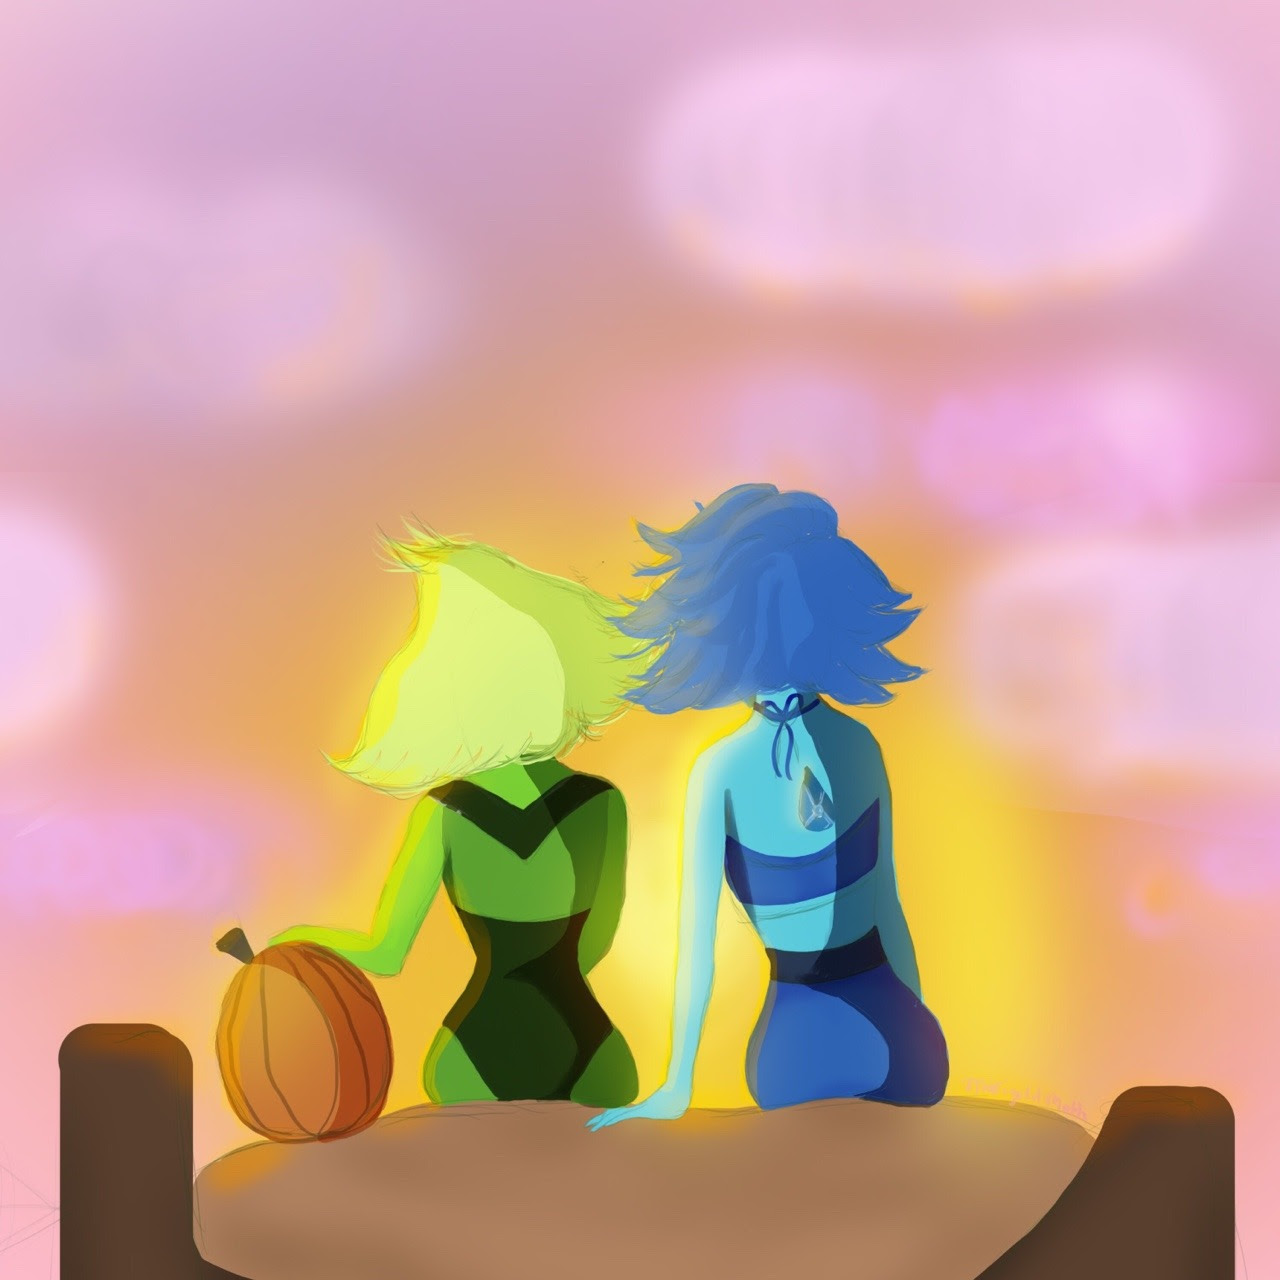 lapidot make a wish on the biggest star✨